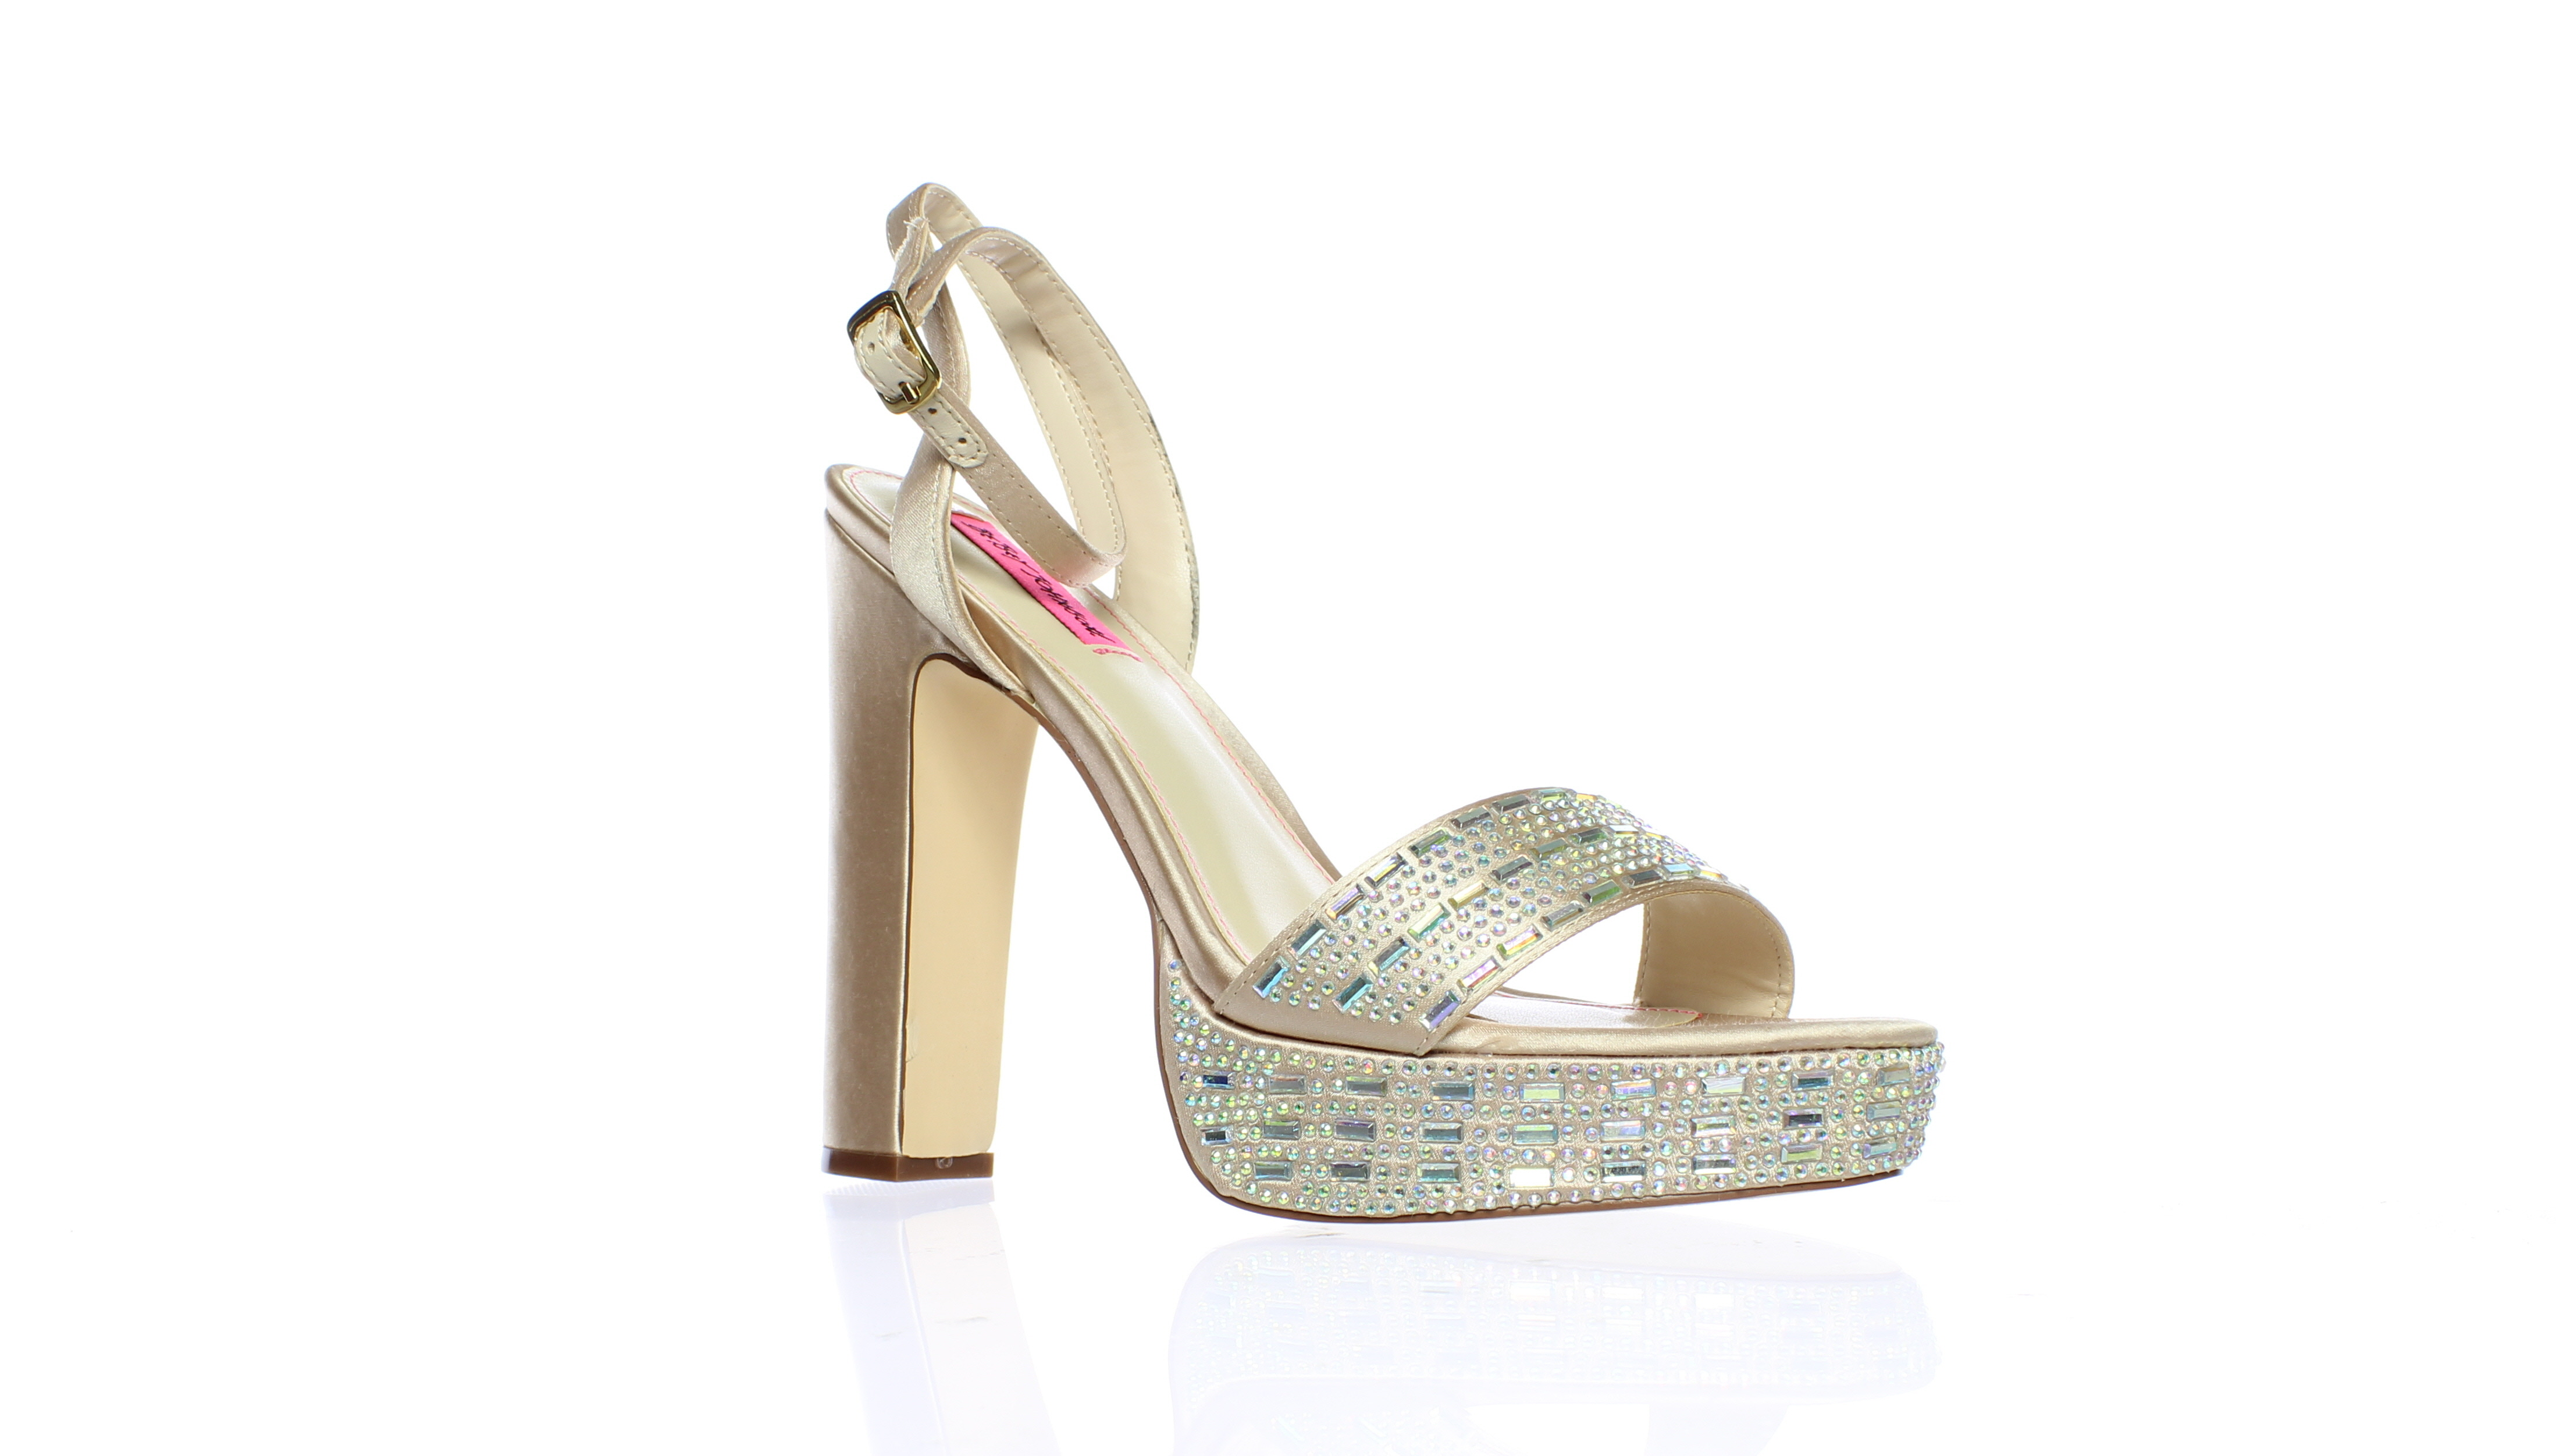 8997d8178a98 Betsey Johnson Womens Alliie Champagne Ankle Strap Heels Size 8 (51054)